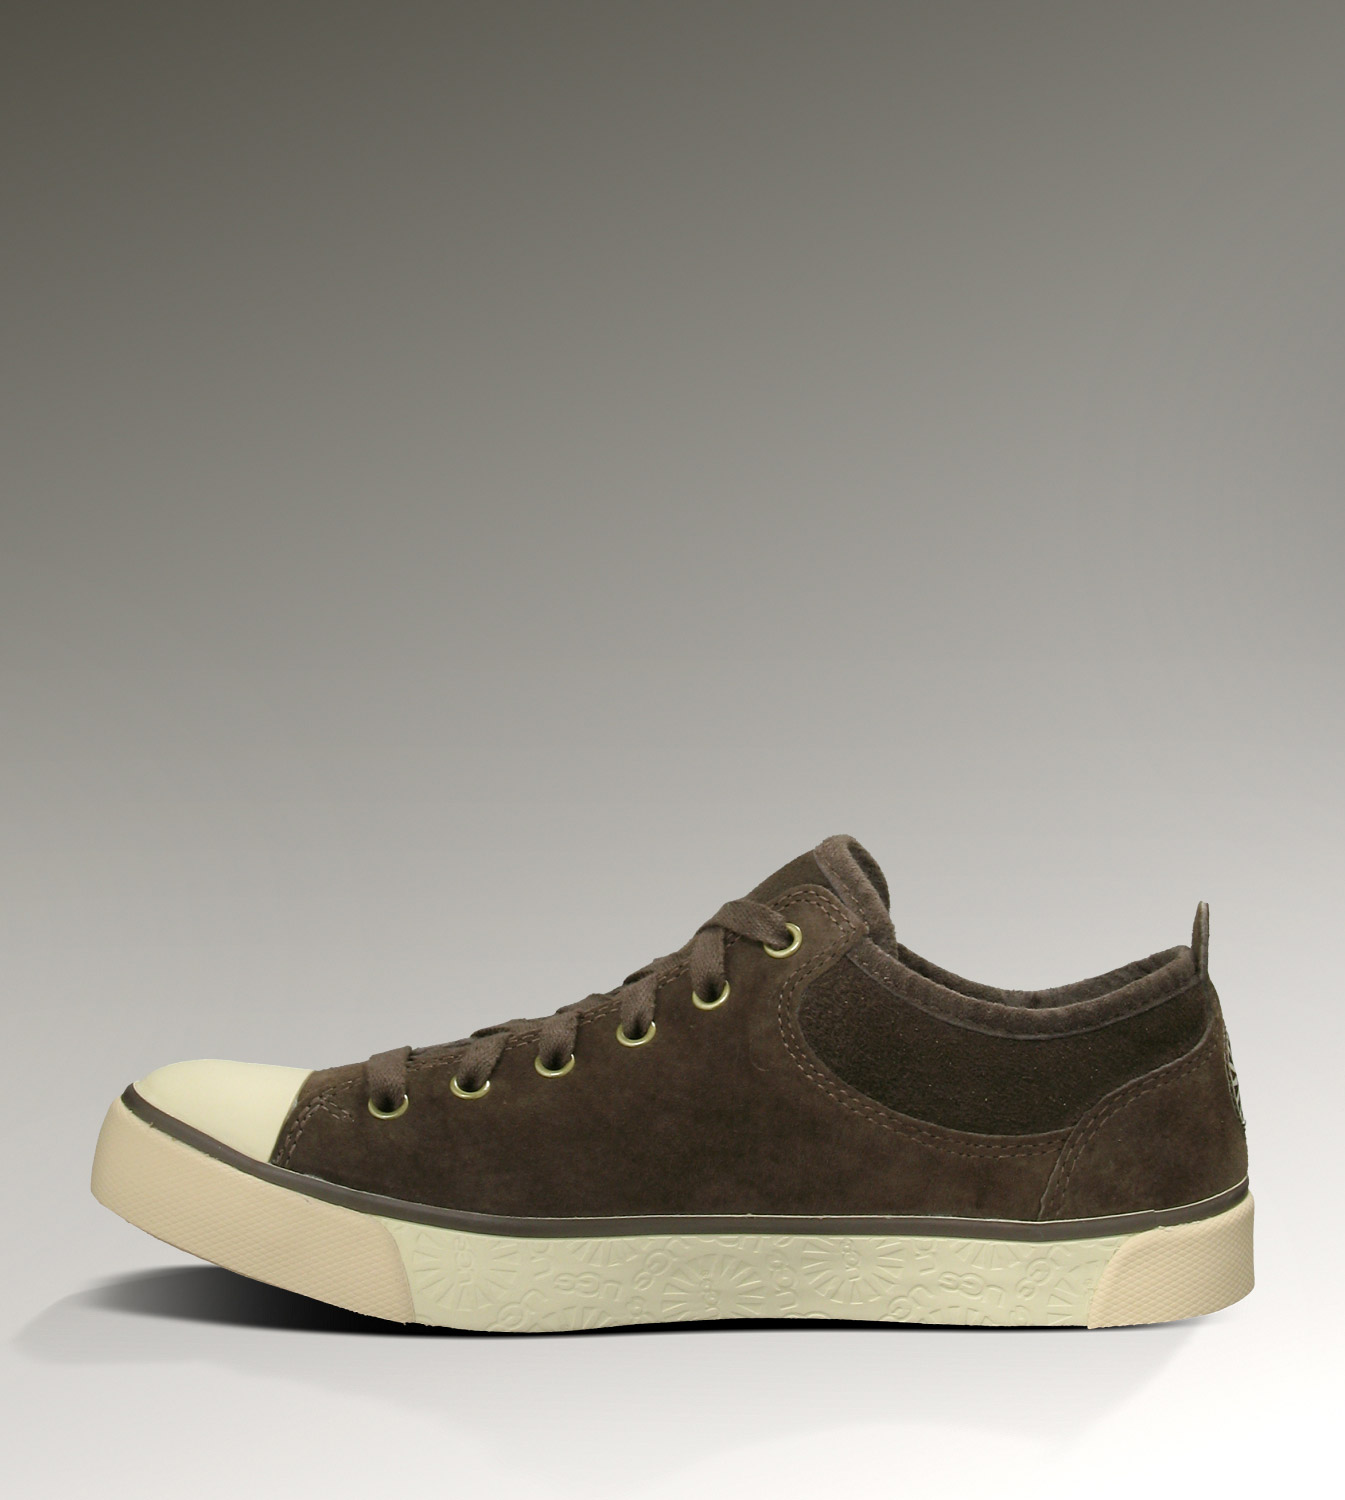 UGG Evera 1888 Chocolate Sneakers